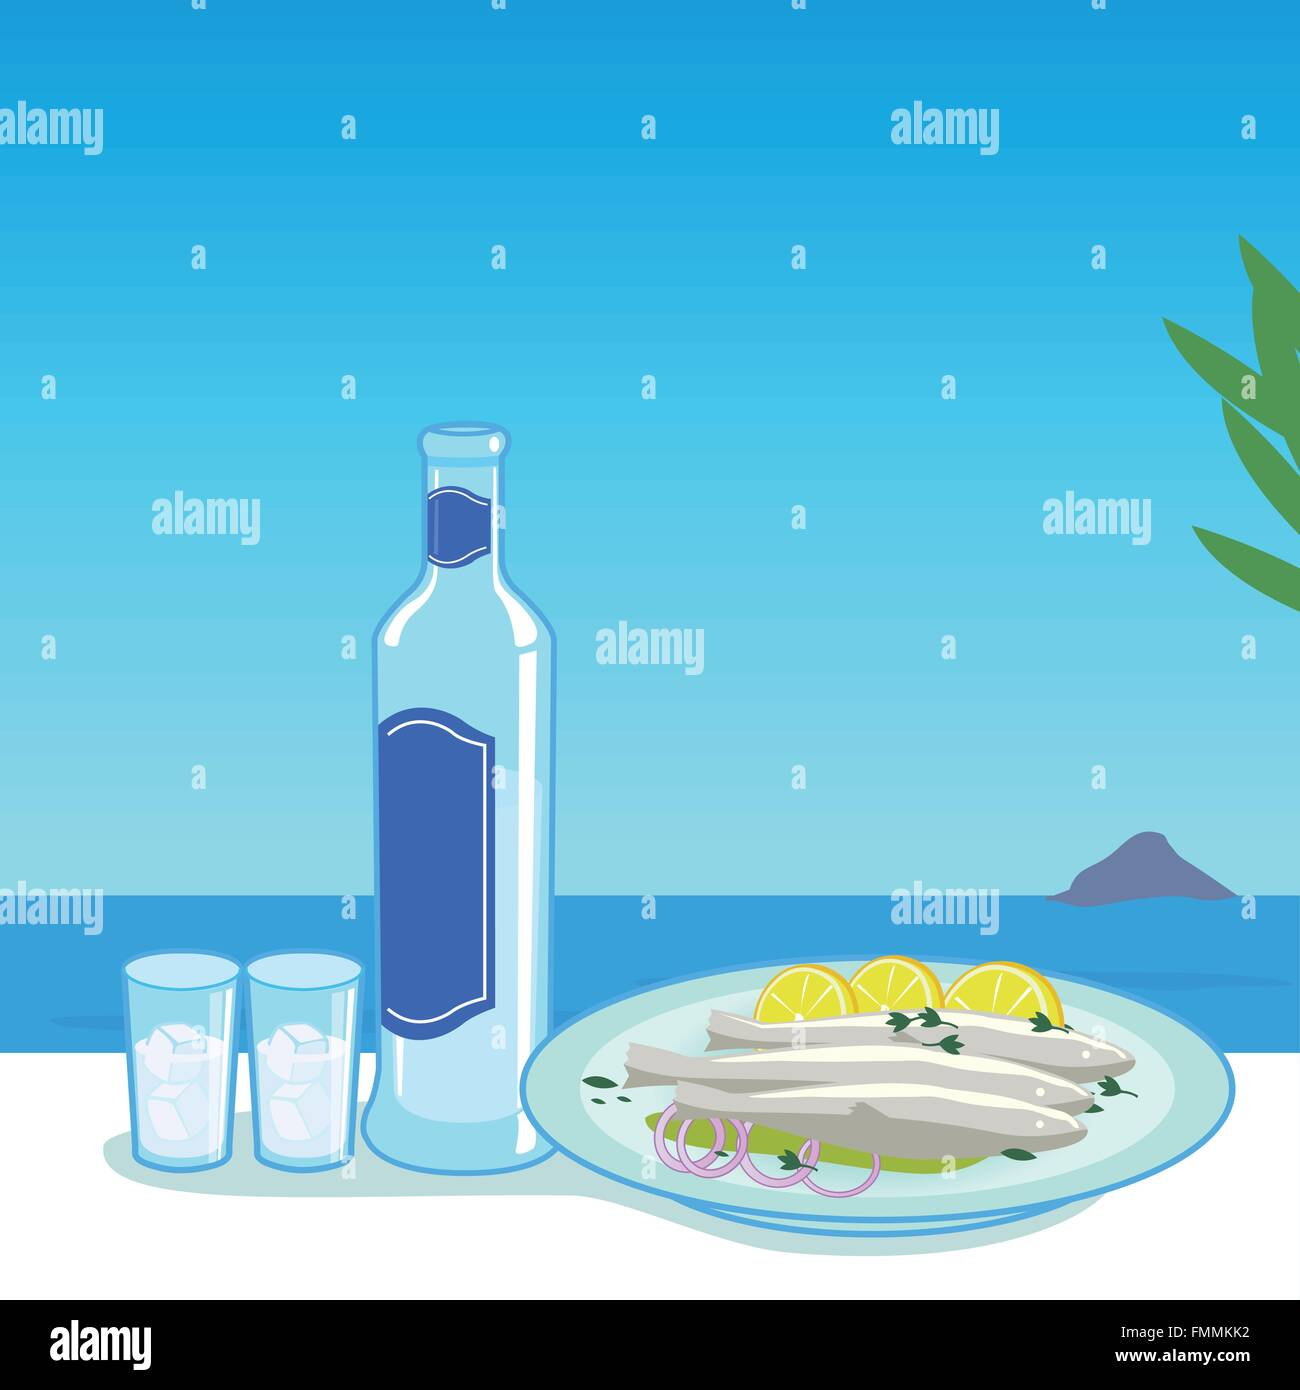 A bottle of ouzo and a dish with cooked fish in a table next to the sea. - Stock Vector